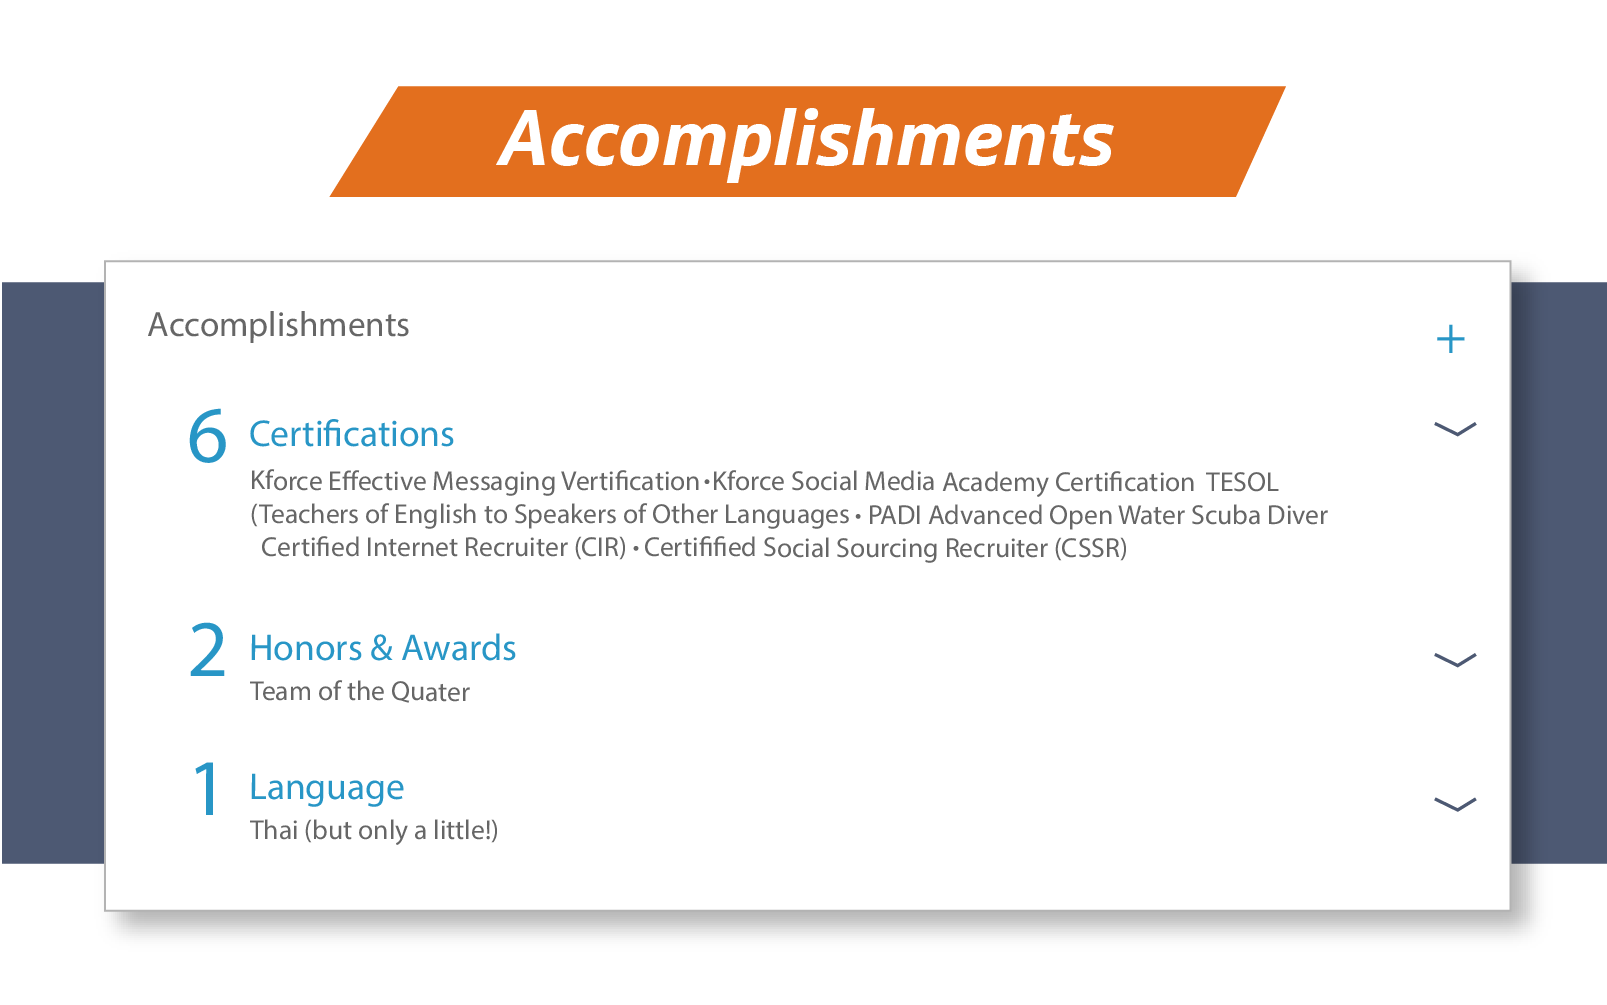 Accomplishments on LinkedIn